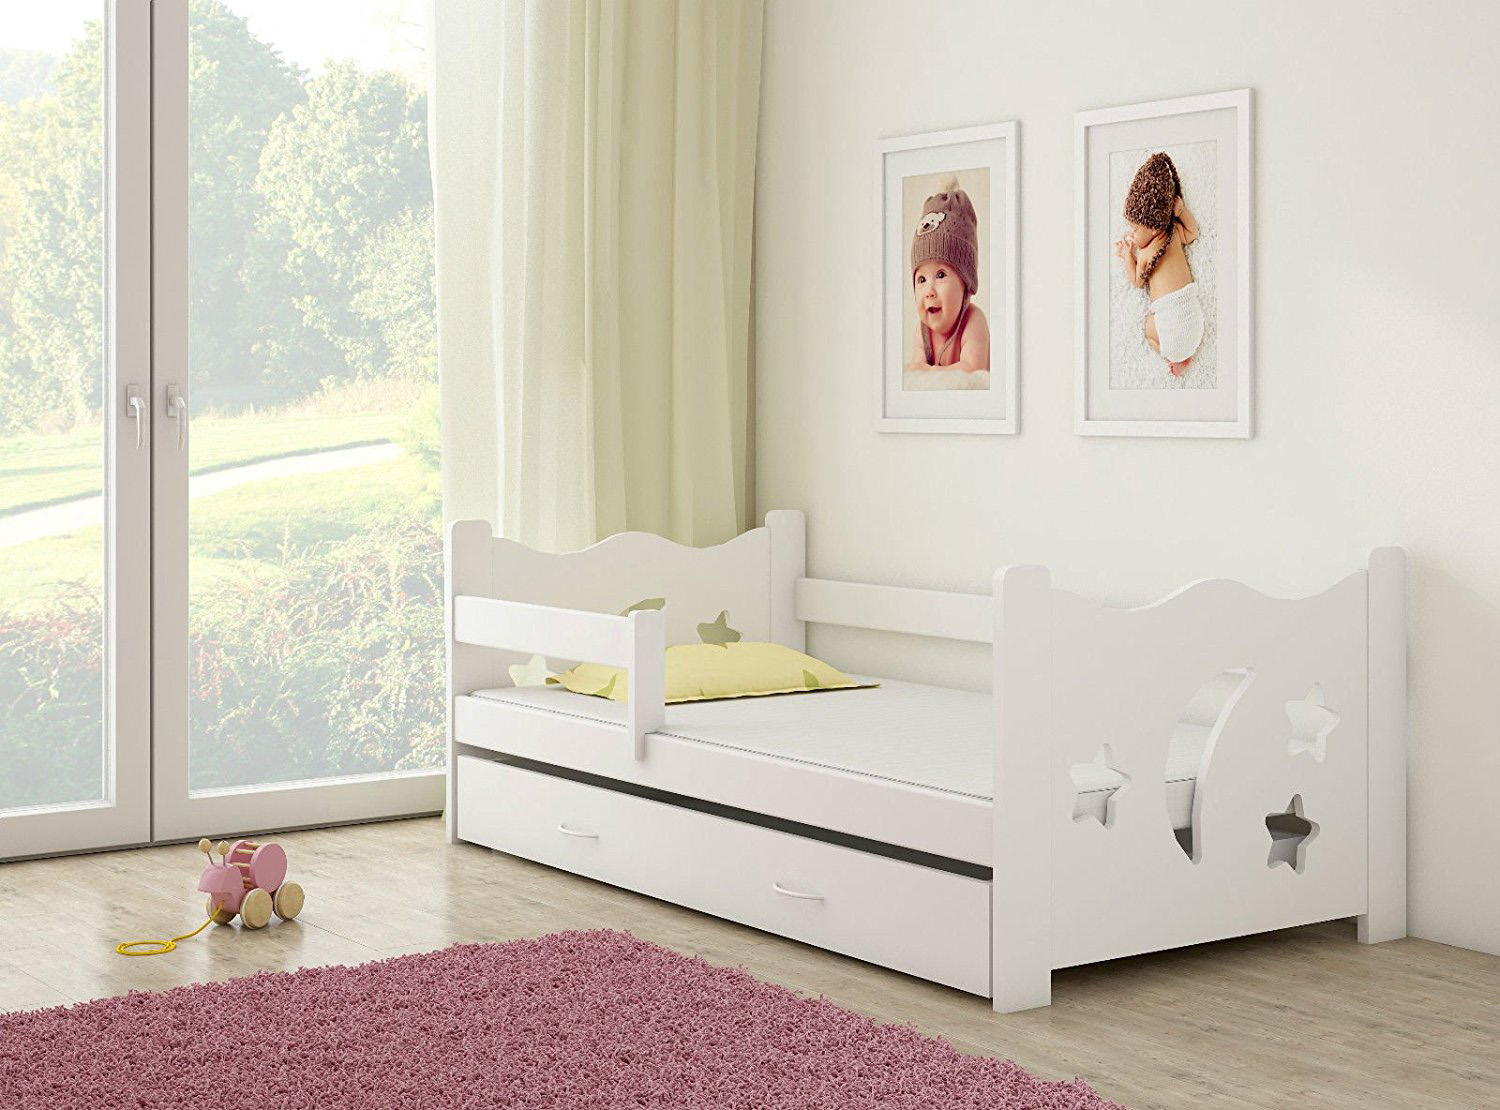 clamaro sternenhimmel kinderbett mit matratze 80x160 cm. Black Bedroom Furniture Sets. Home Design Ideas